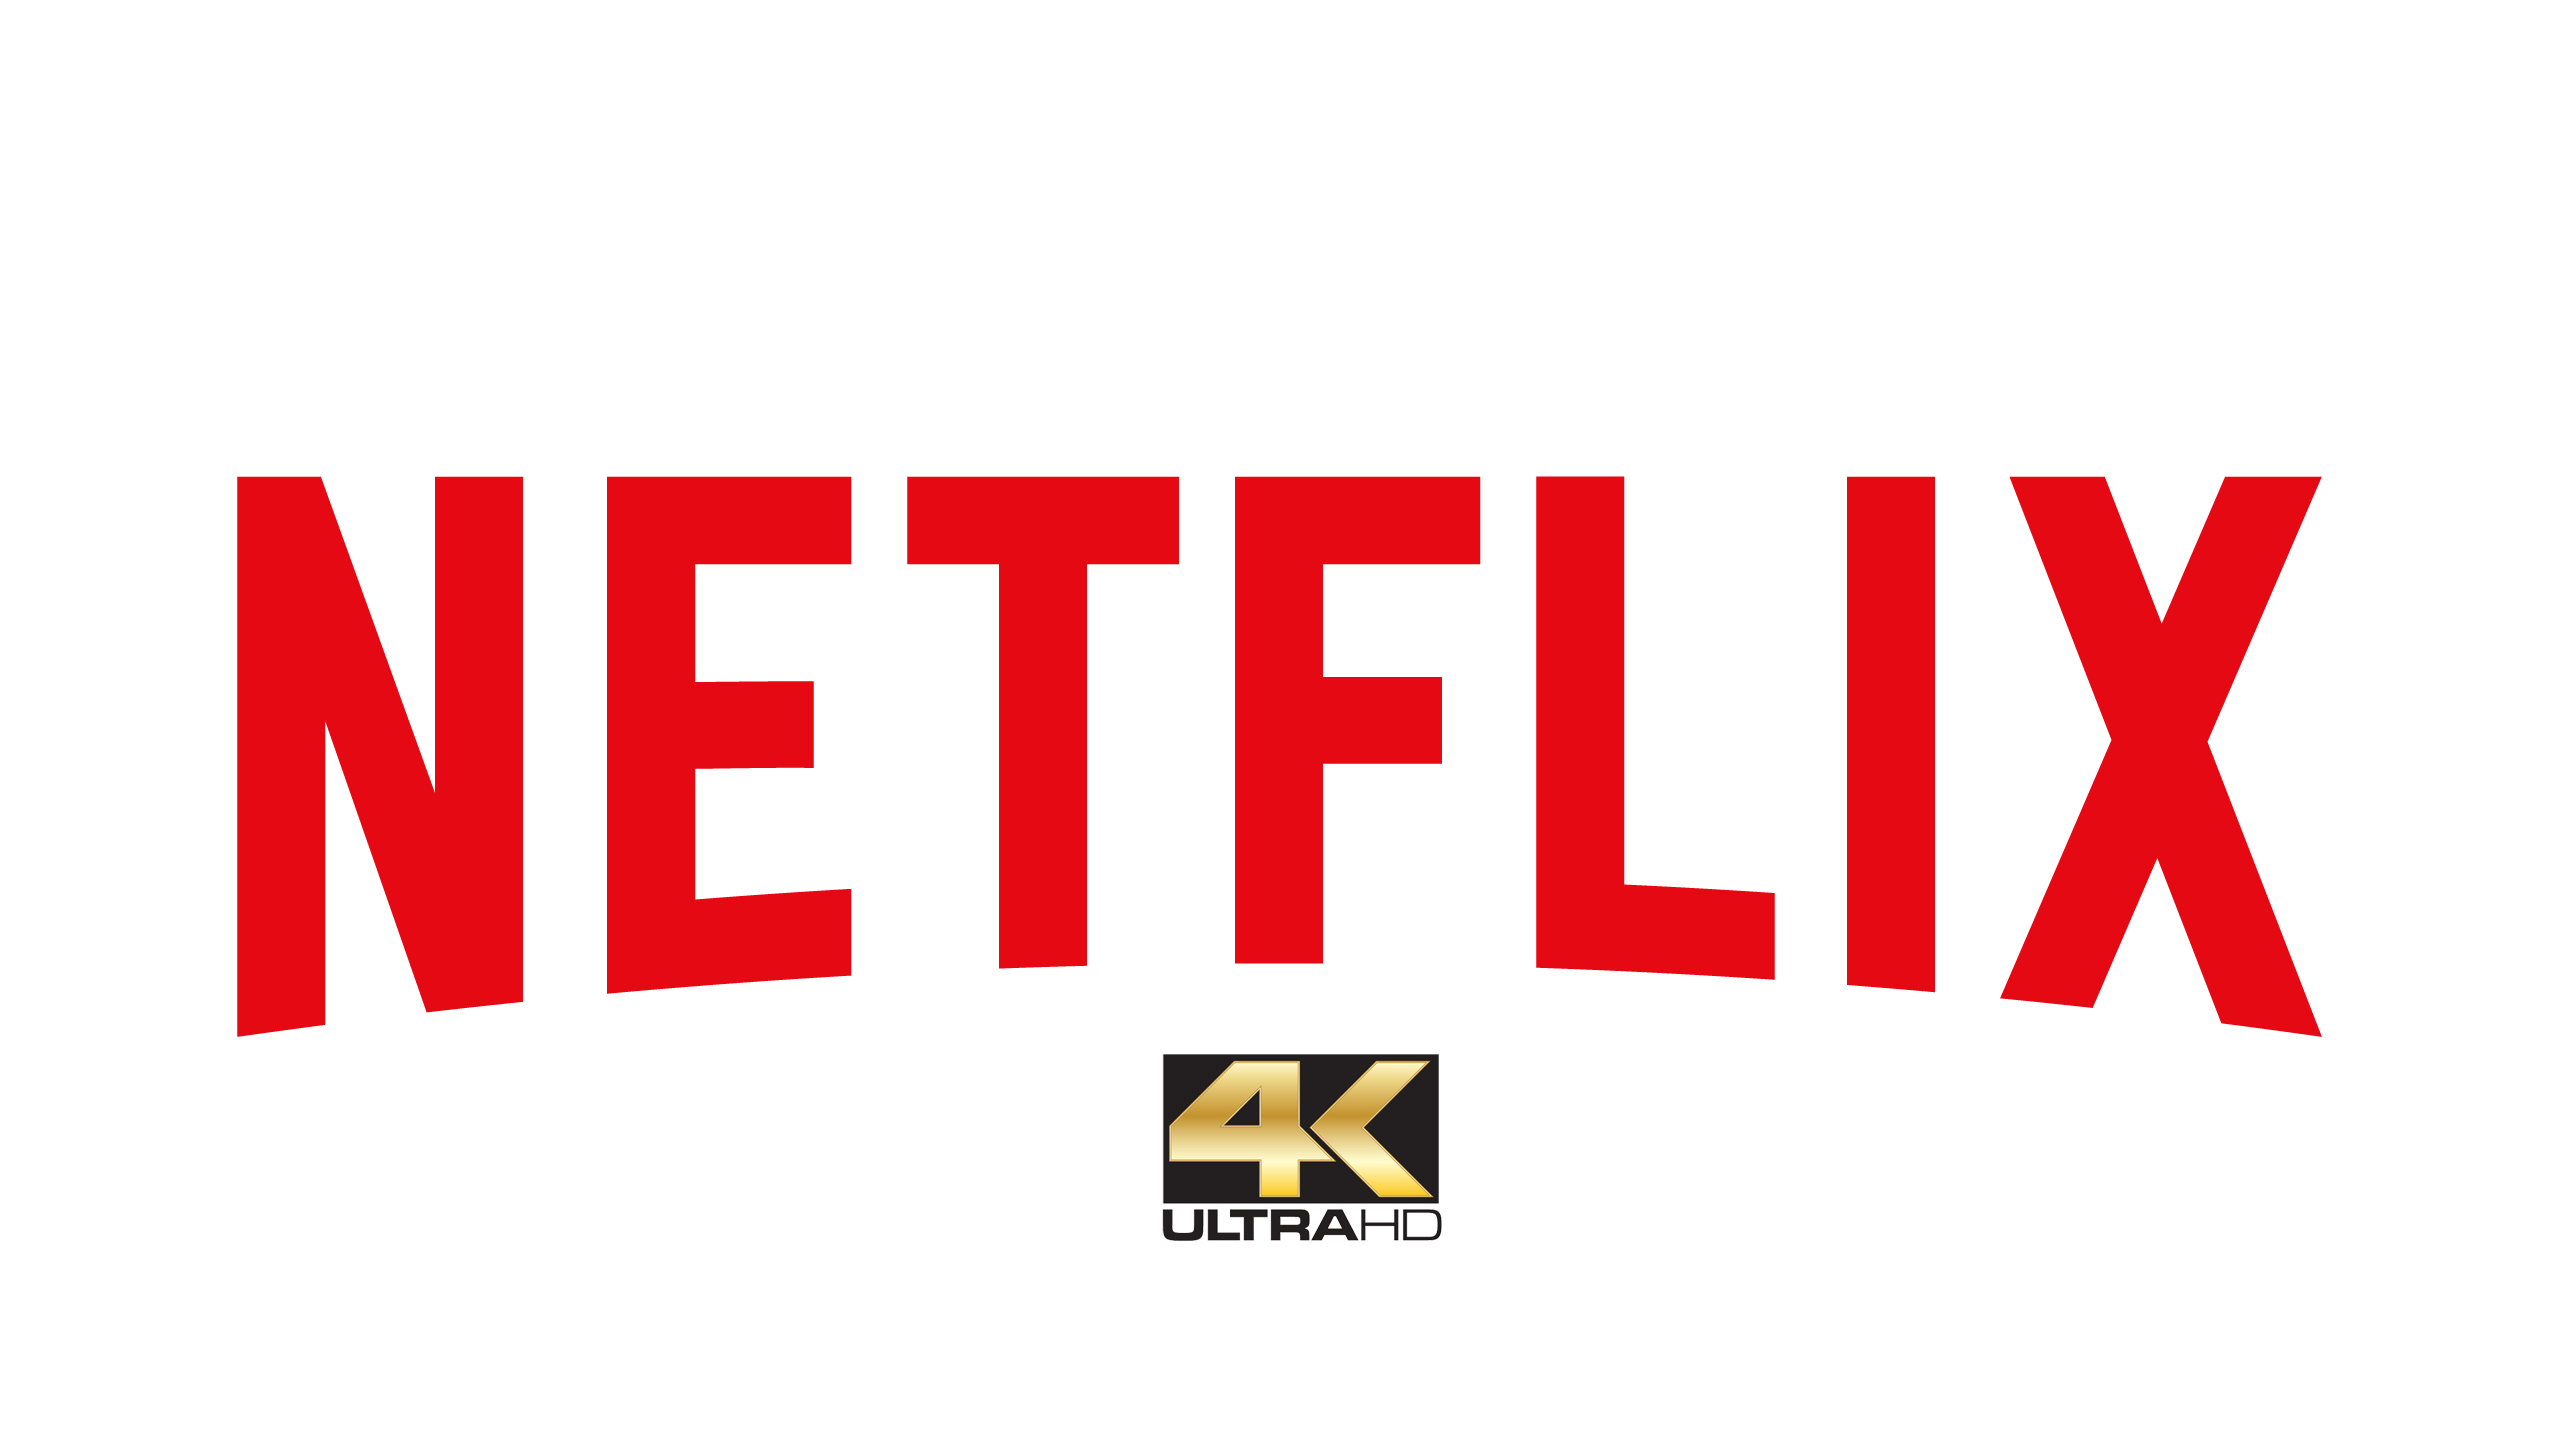 Netflix_Logo_DigitalVideo-uhd_4k-1